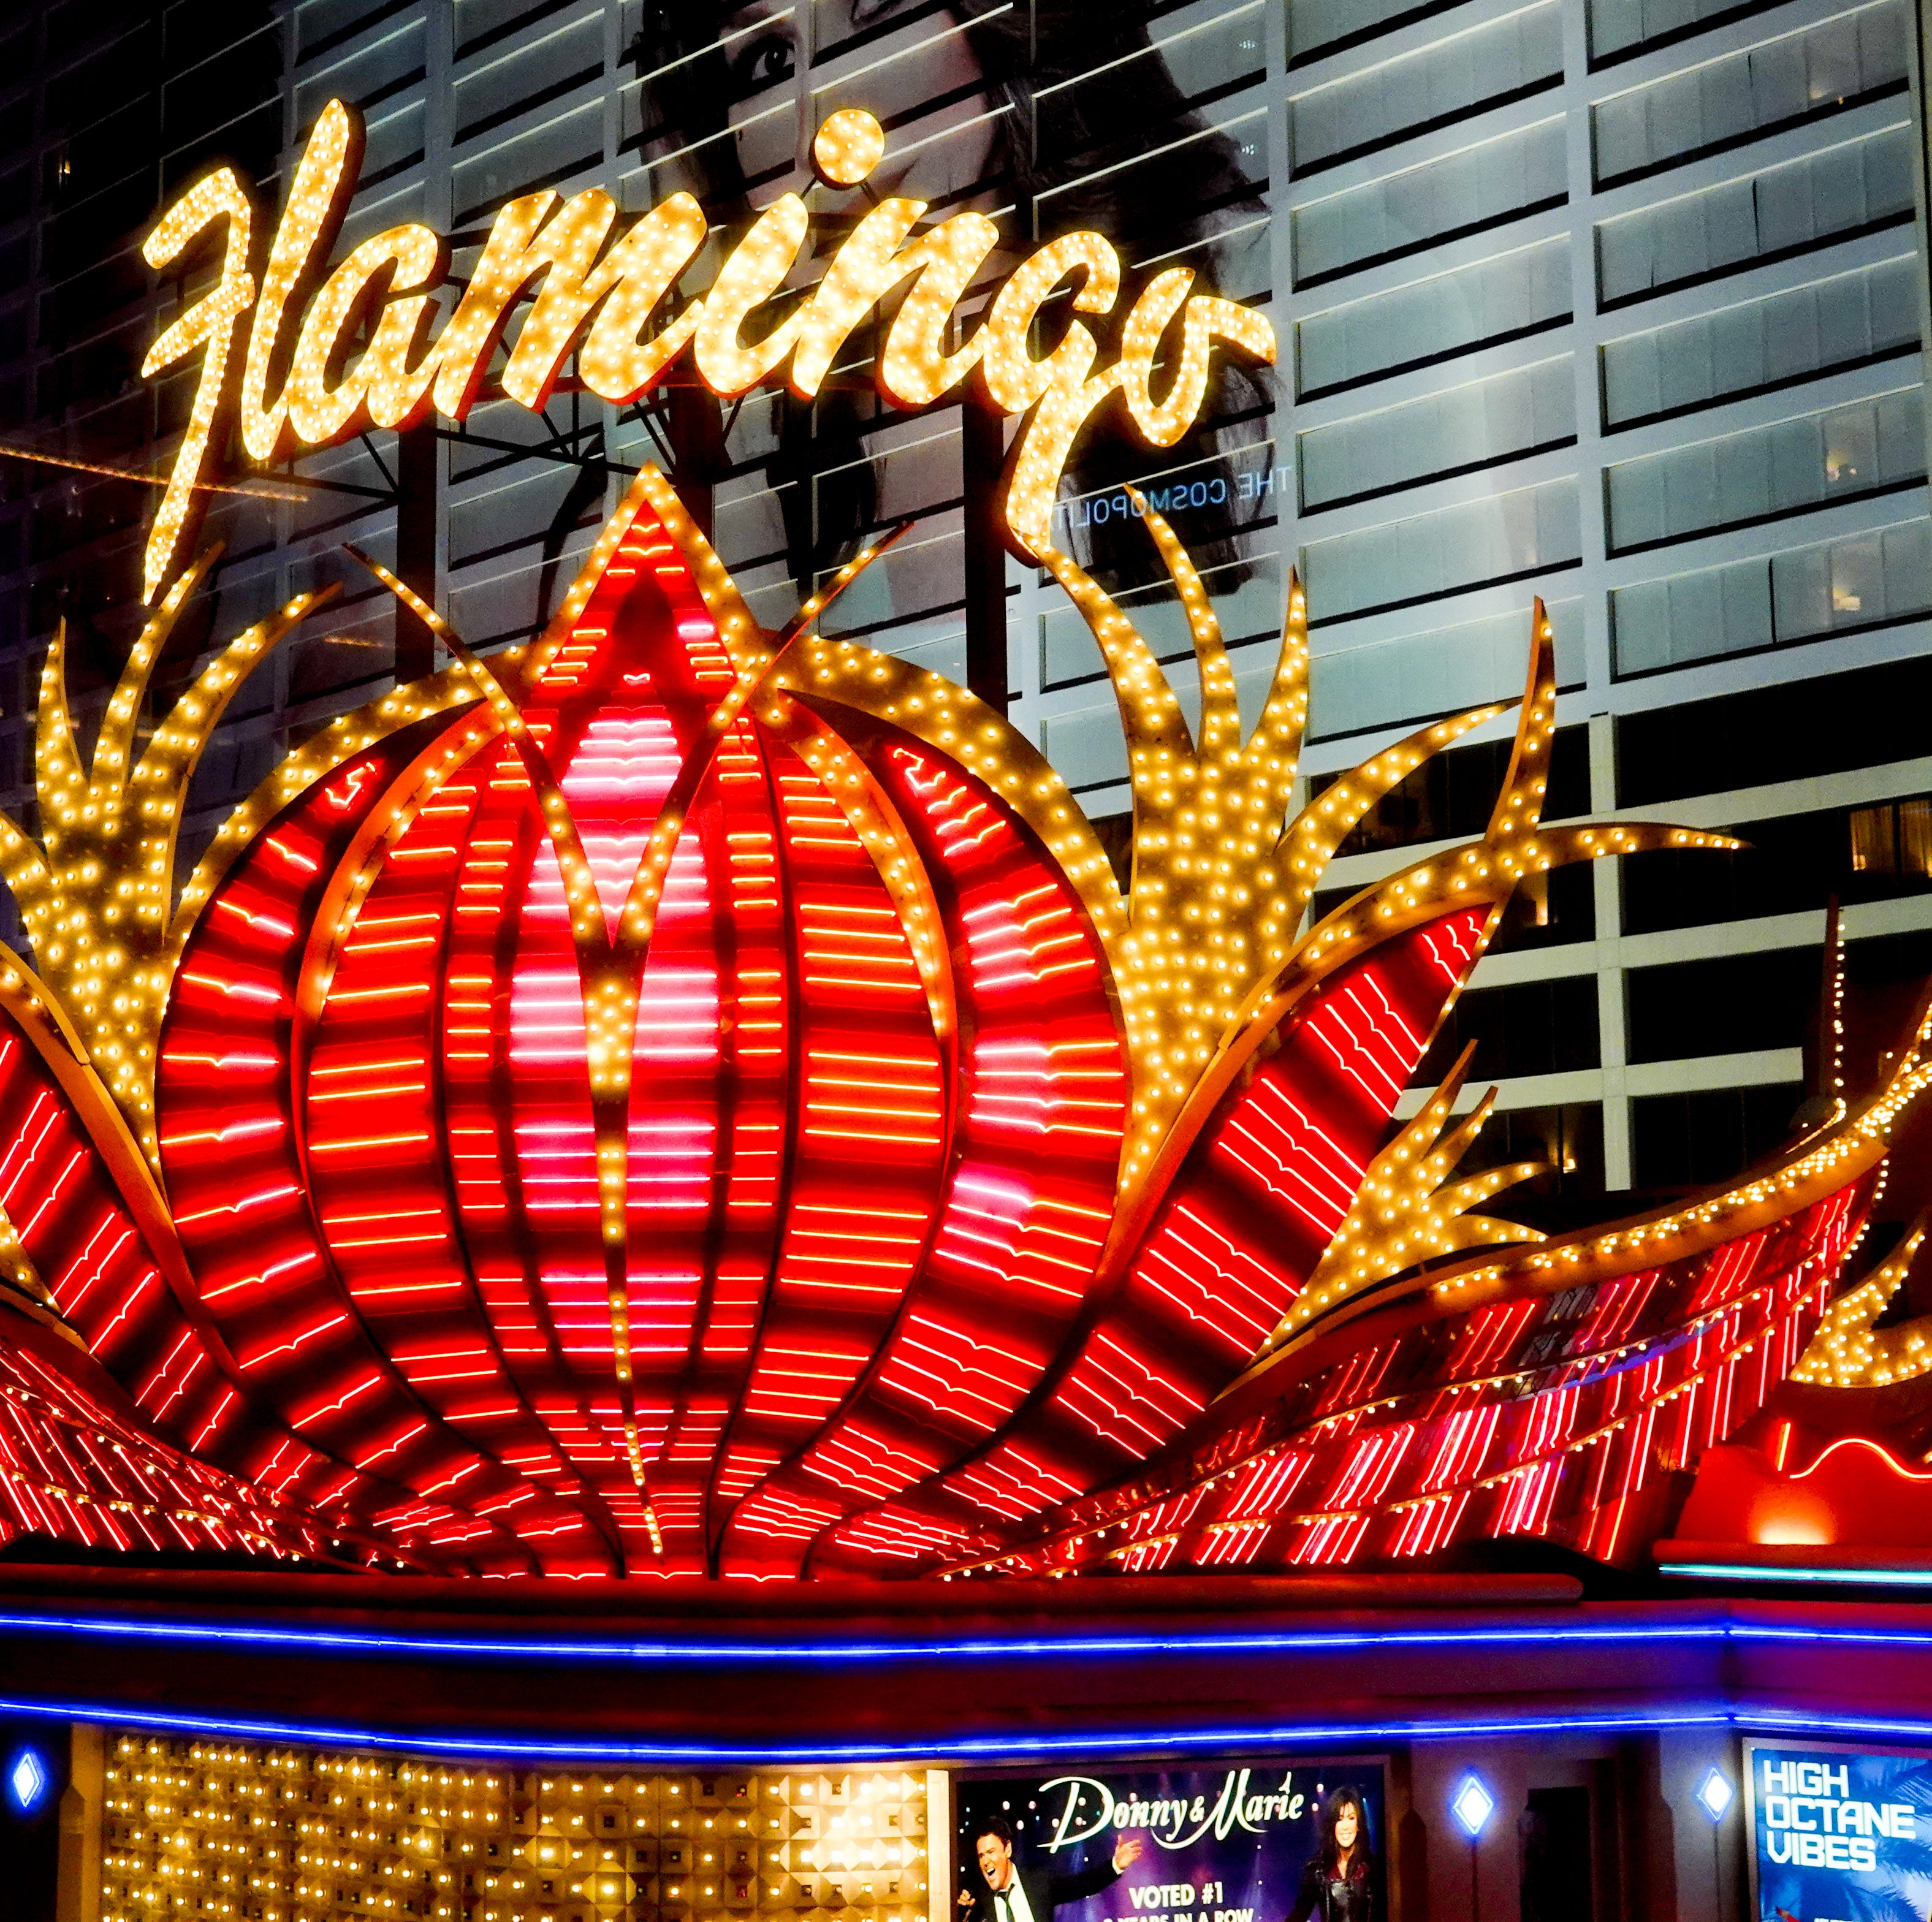 The Flamingo is one of the oldest hotels in Glitter Gulch, and the last example of classic neon on the Las Vegas Strip. Most of the other hotels have turned to LED lights and video screens. Join us on a photo tour in search of classic neon in Las Vegas.